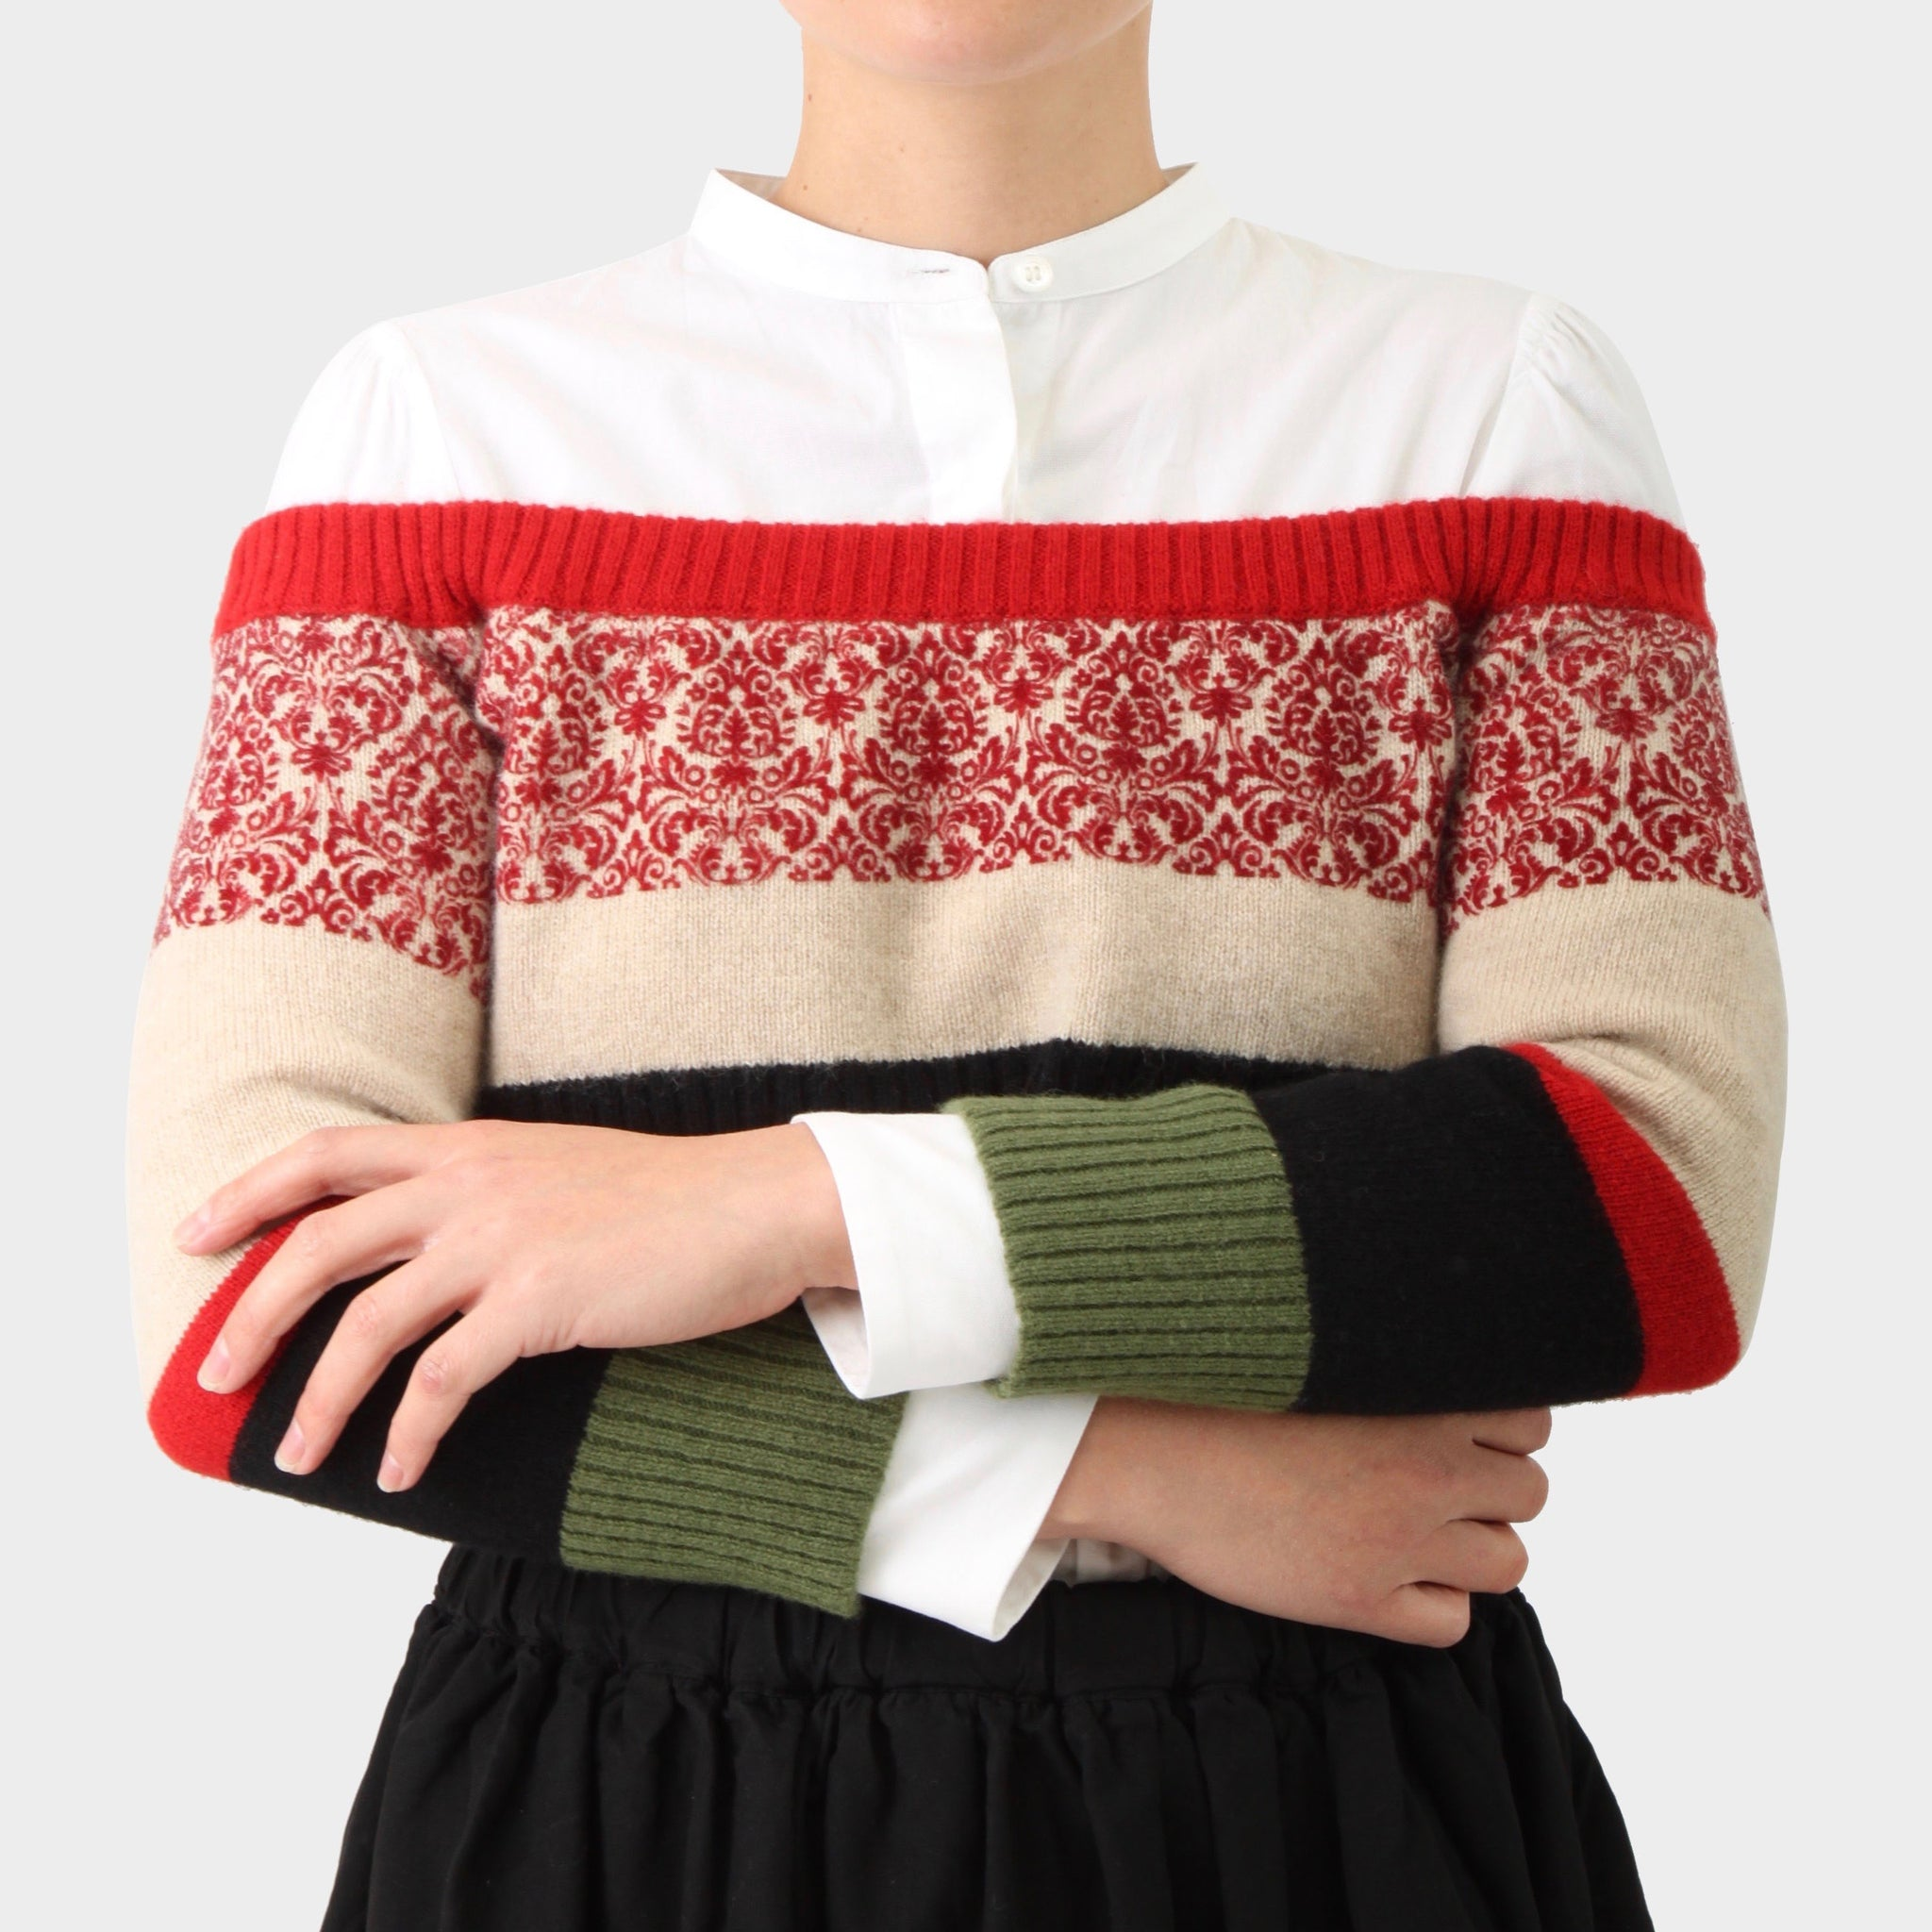 Undercover Knitted Sleeve Cropped Top